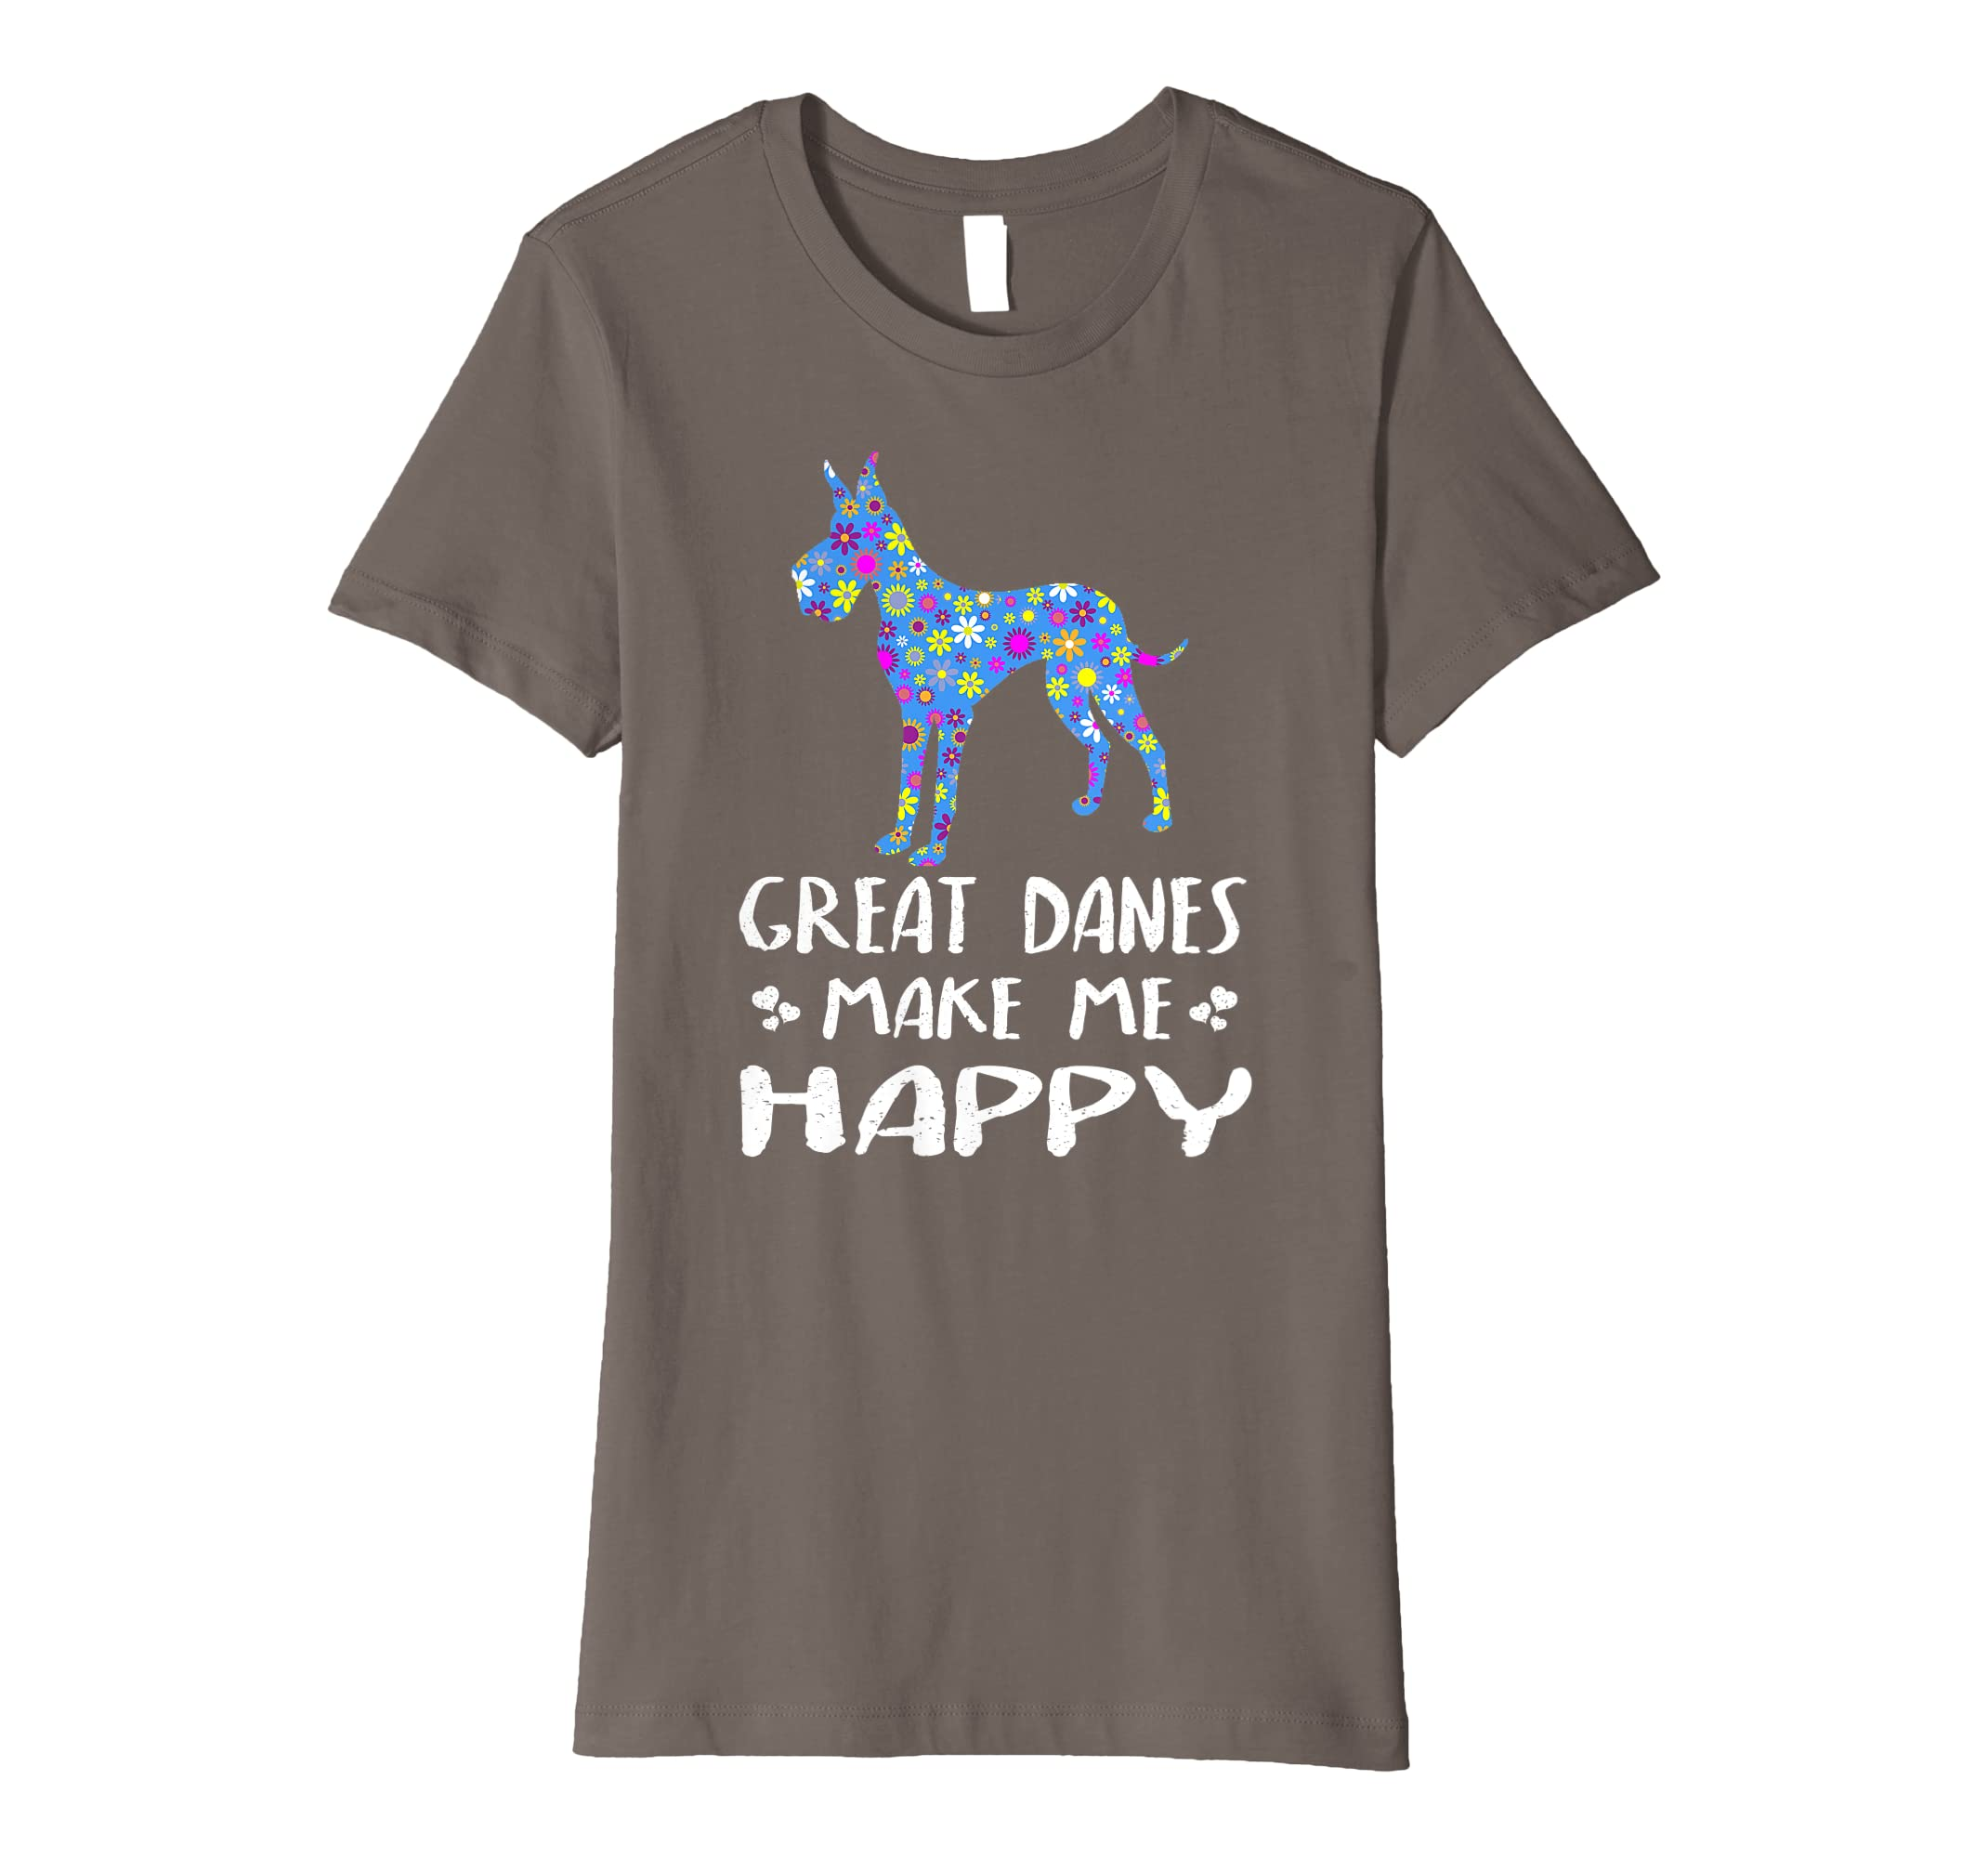 921c3ca1 Amazon.com: Great Danes Make Me Happy - Cute Floral Dog Gifts For Women  Premium T-Shirt: Clothing